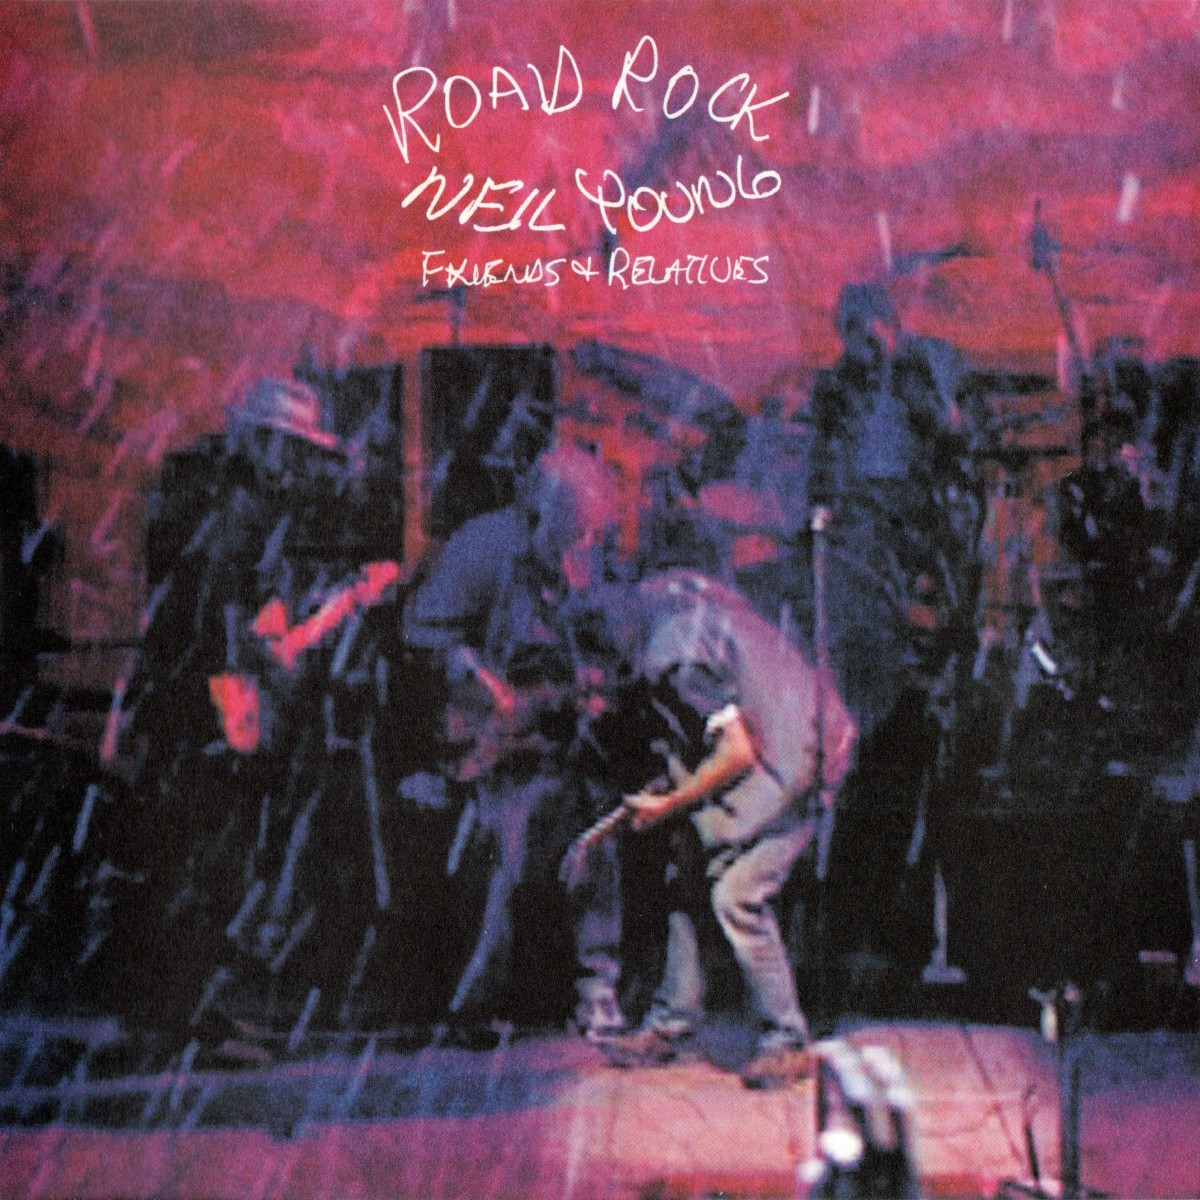 Neil Young - Road Rock CD - 9362480362